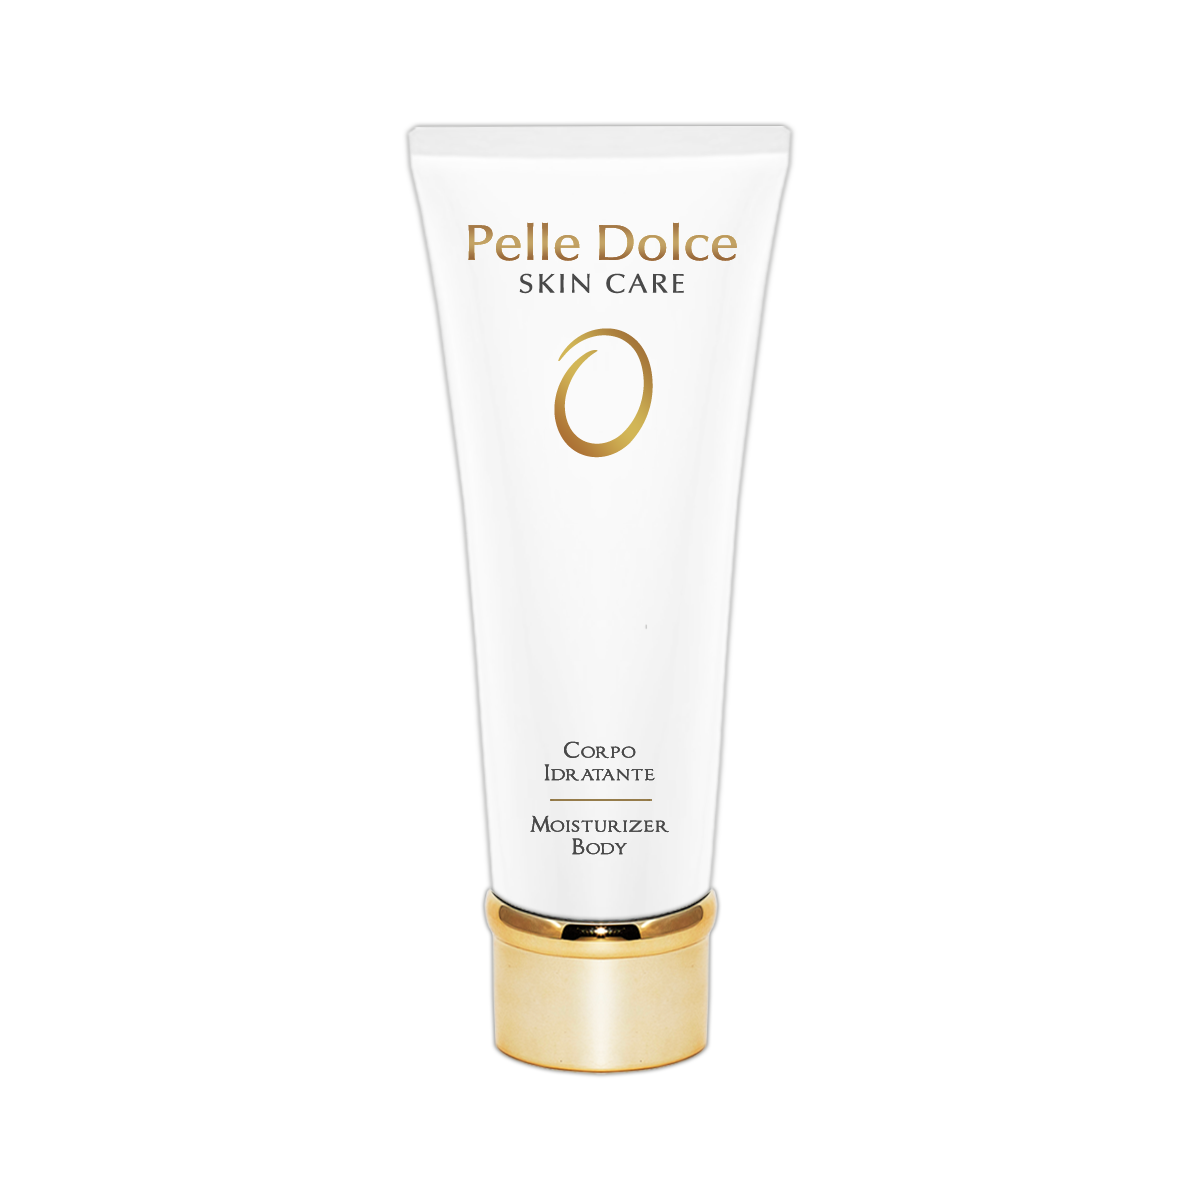 pelle-dolce-skin-care-body-moisturizing-cream